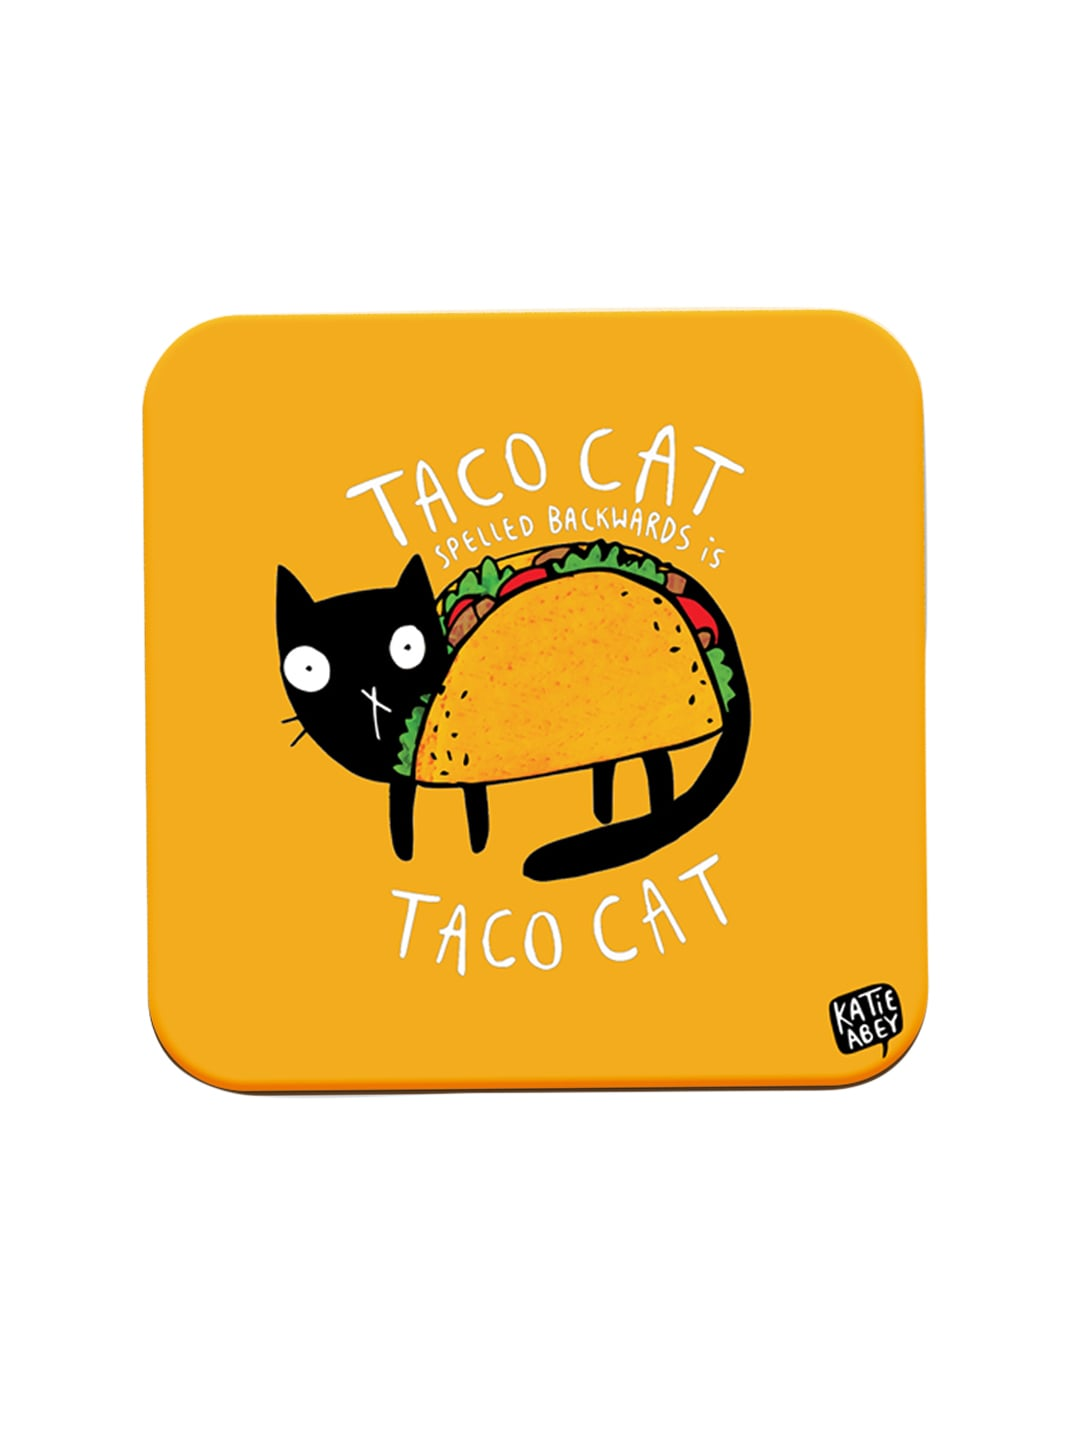 Happywagon Yellow Taco Cat Printed MDF Square Coaster